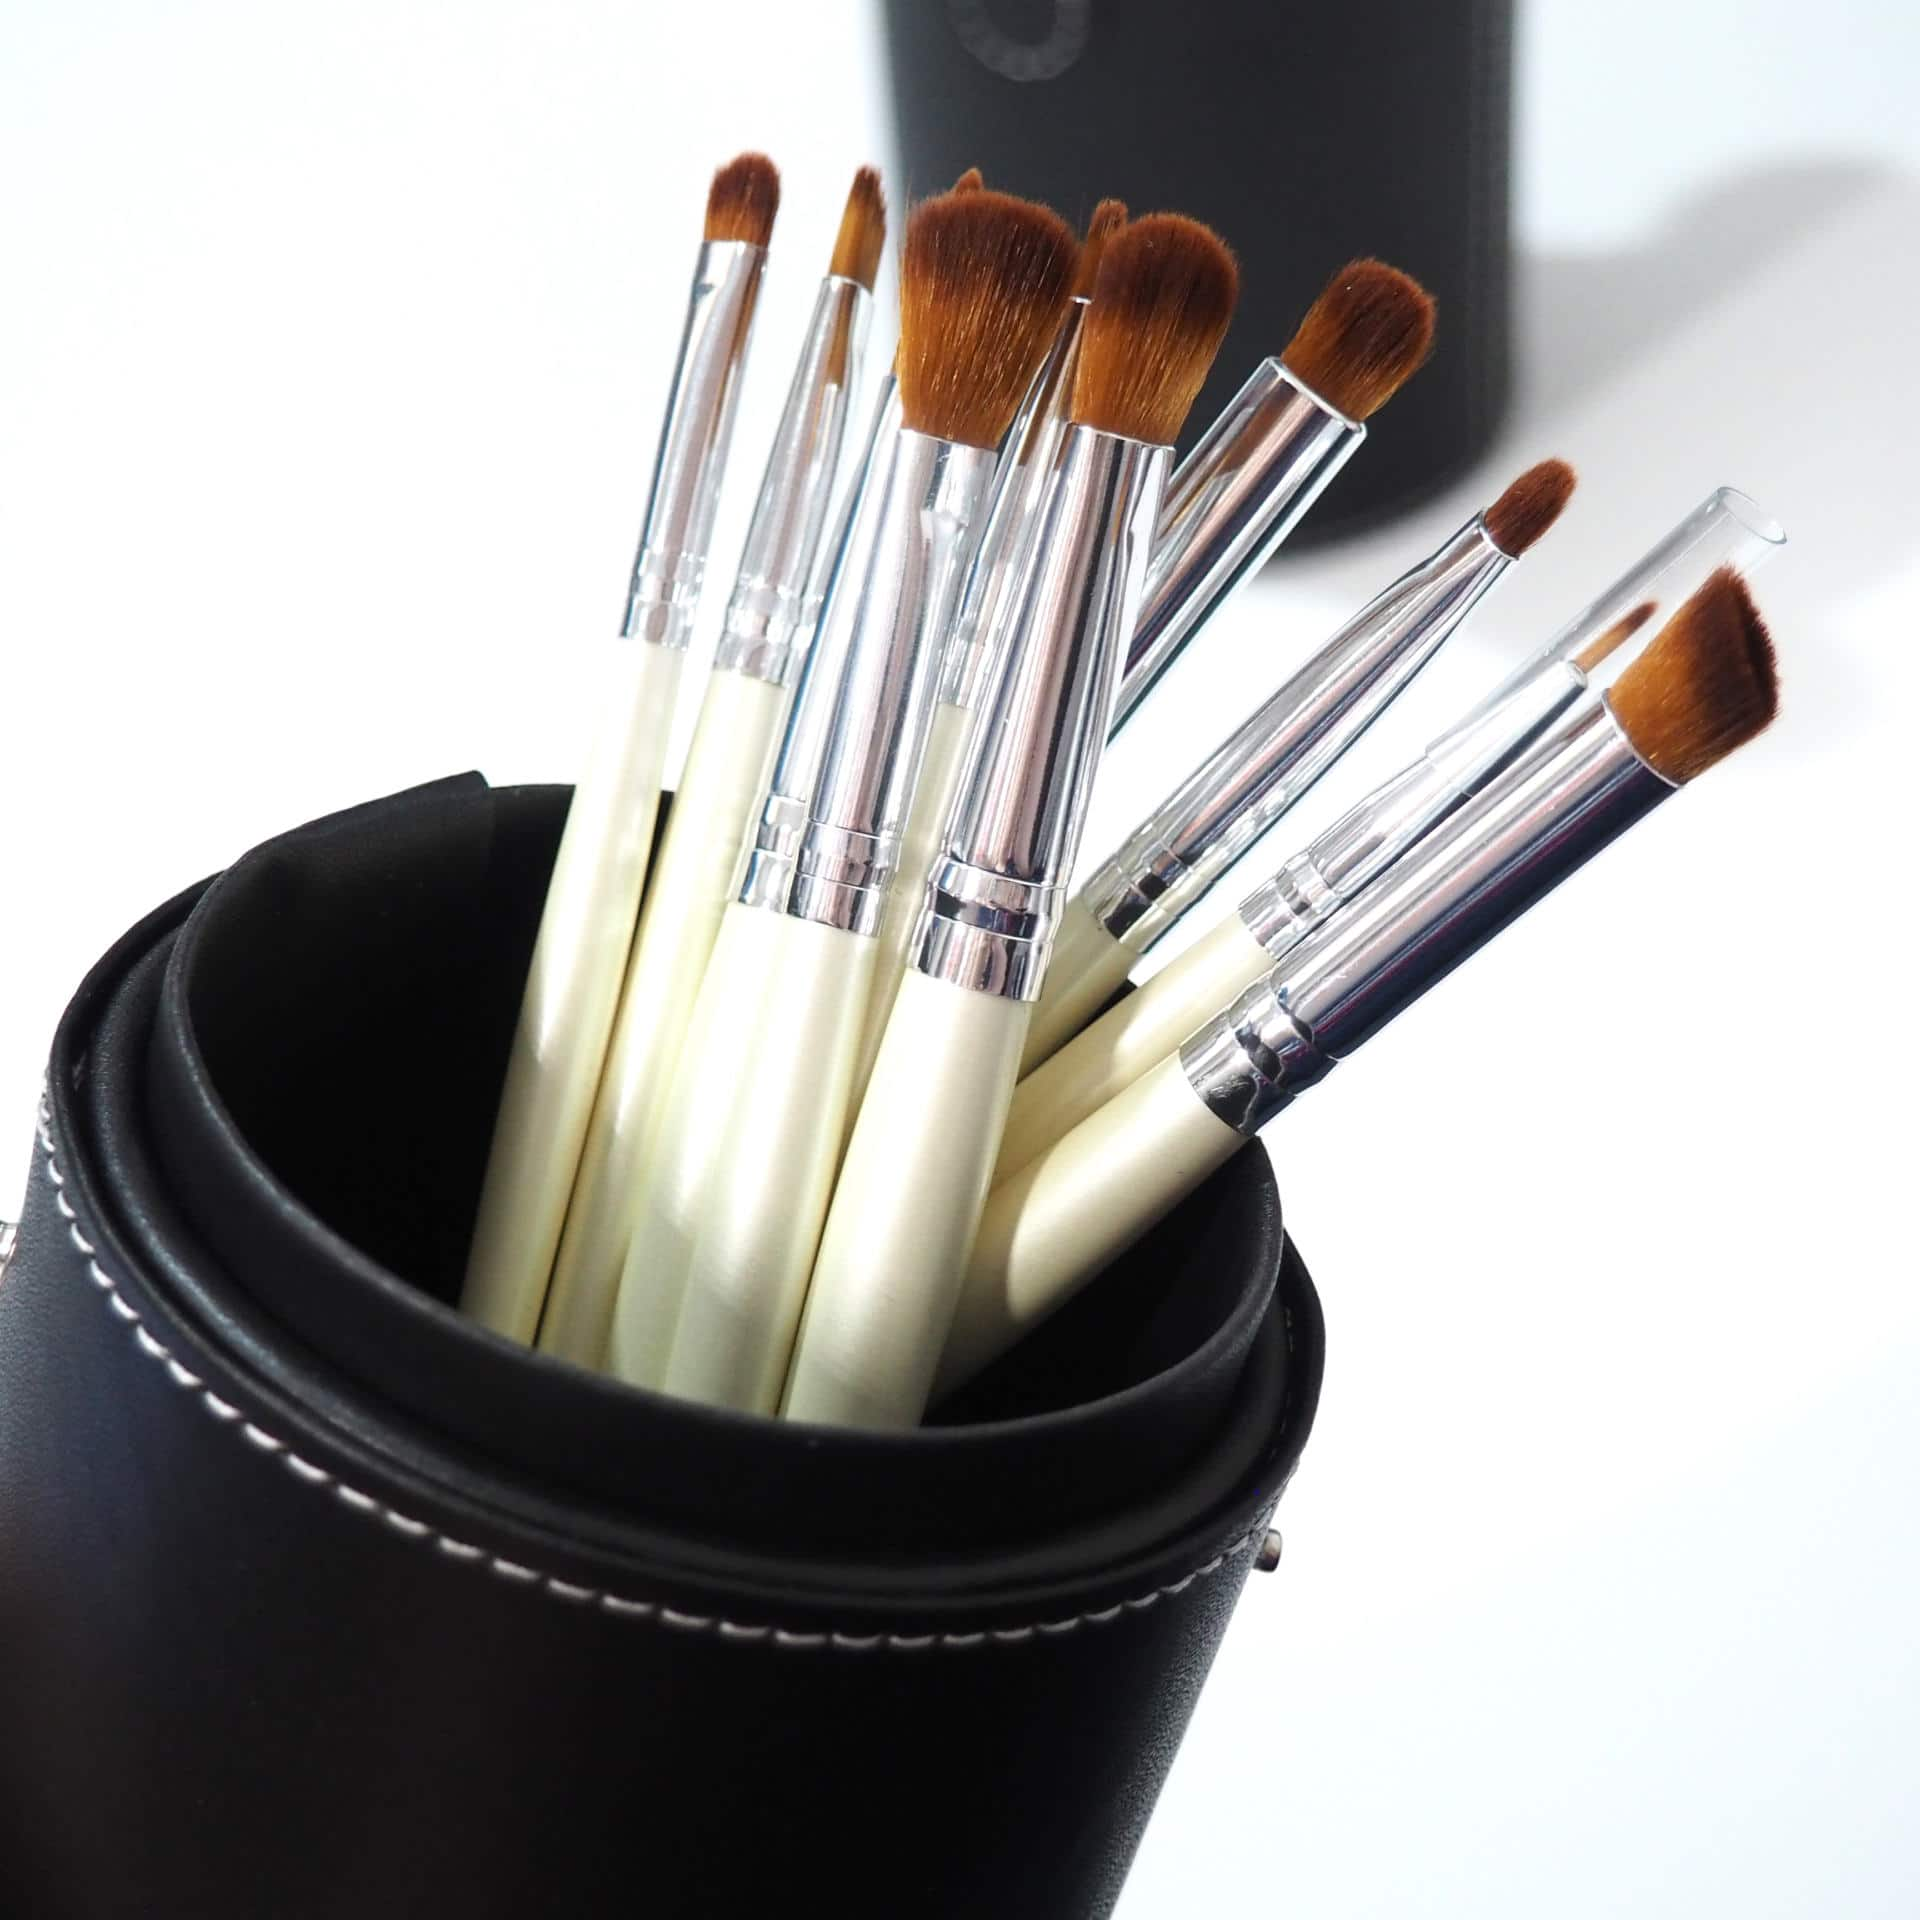 Coastal Scents Pearl 16 Piece Brush Set Review